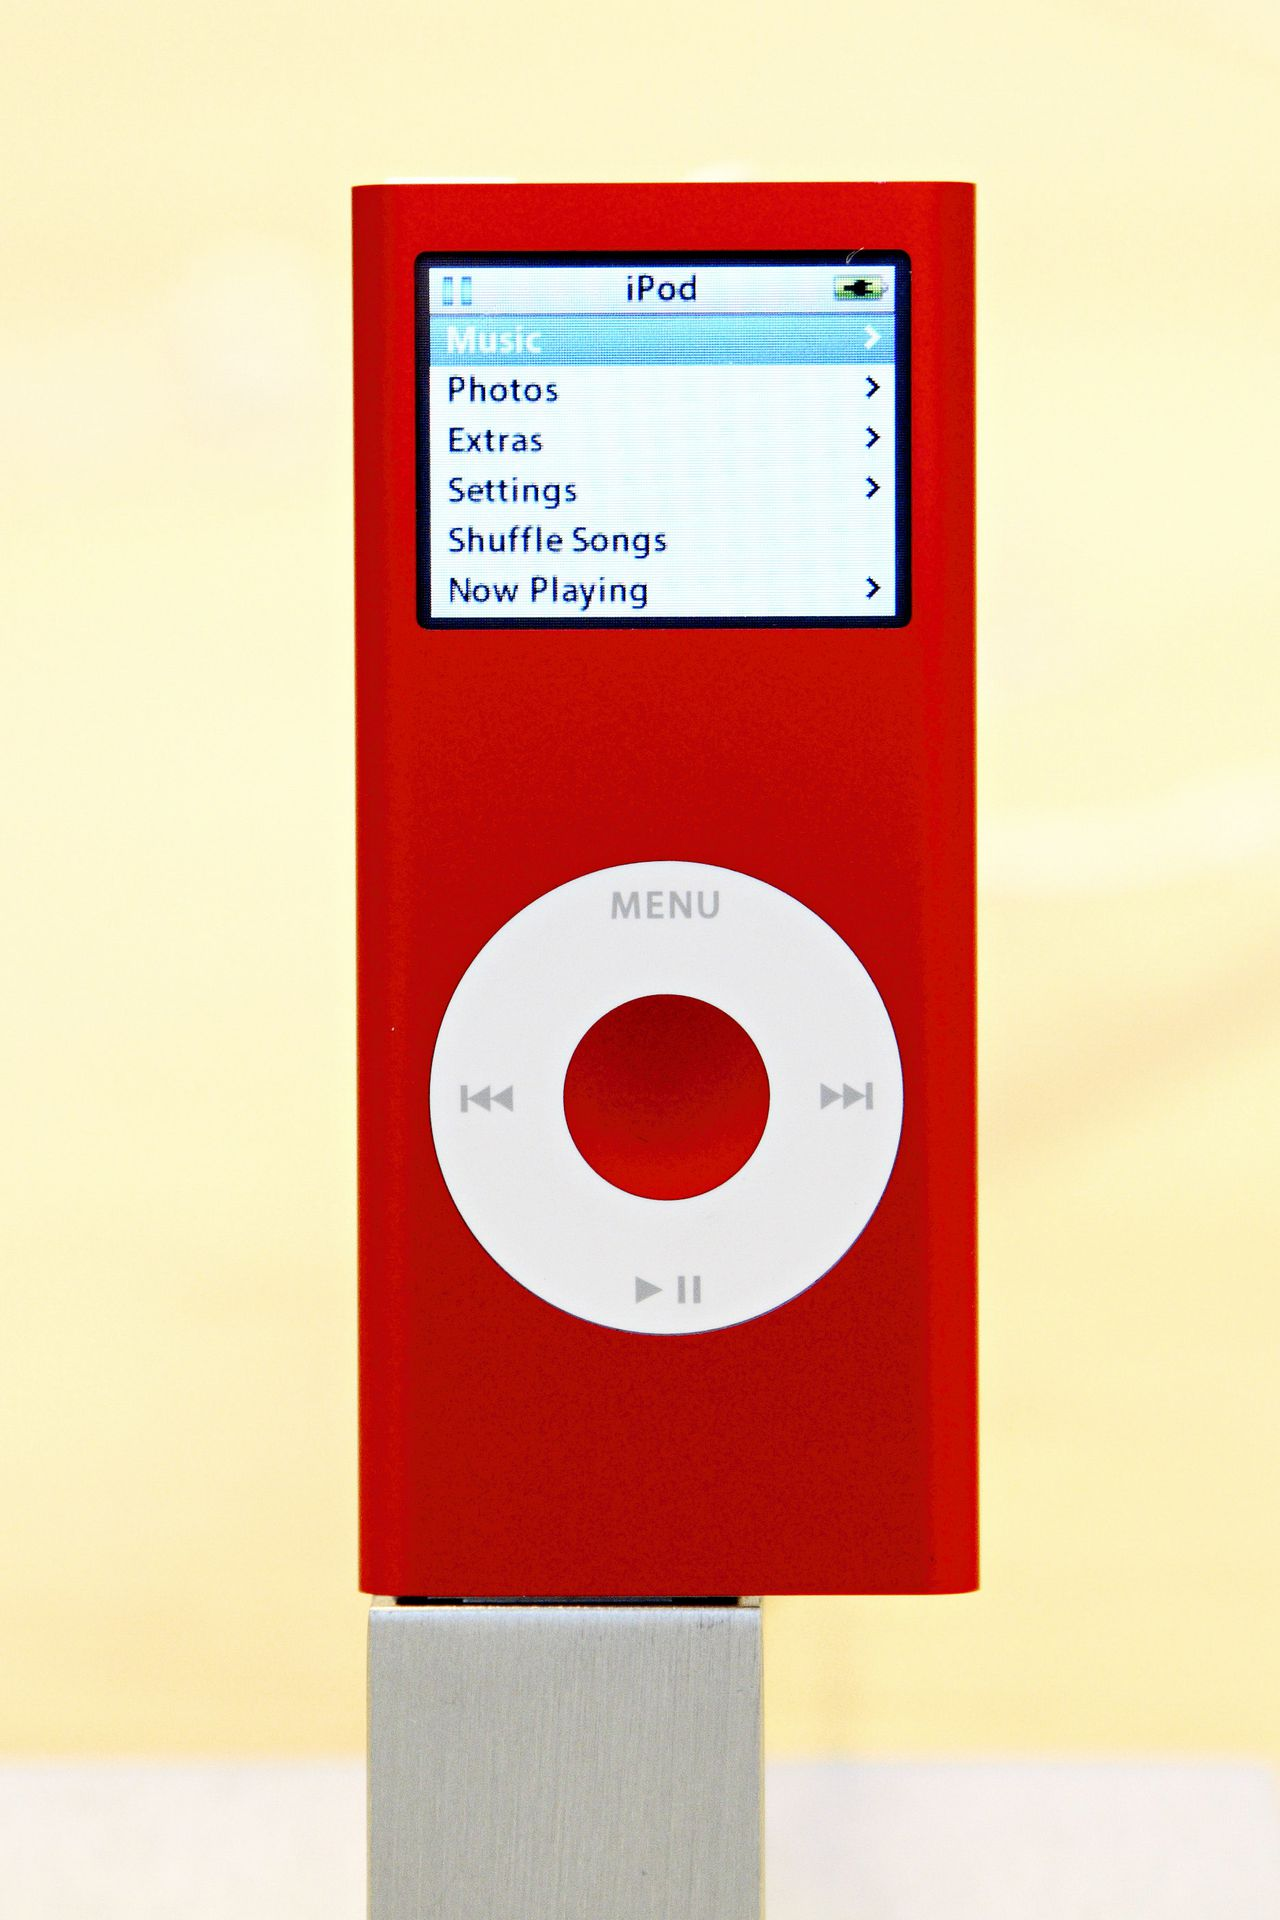 The new red iPod nano on display at the Fifth Avenue Apple store in New York City on Friday, October 13, 2006. Apple announced a new red iPod nano, created by U2 lead singer Bono to help in the fight against AIDS in Africa. Photographer: Adam Rountree/Bloomberg News.